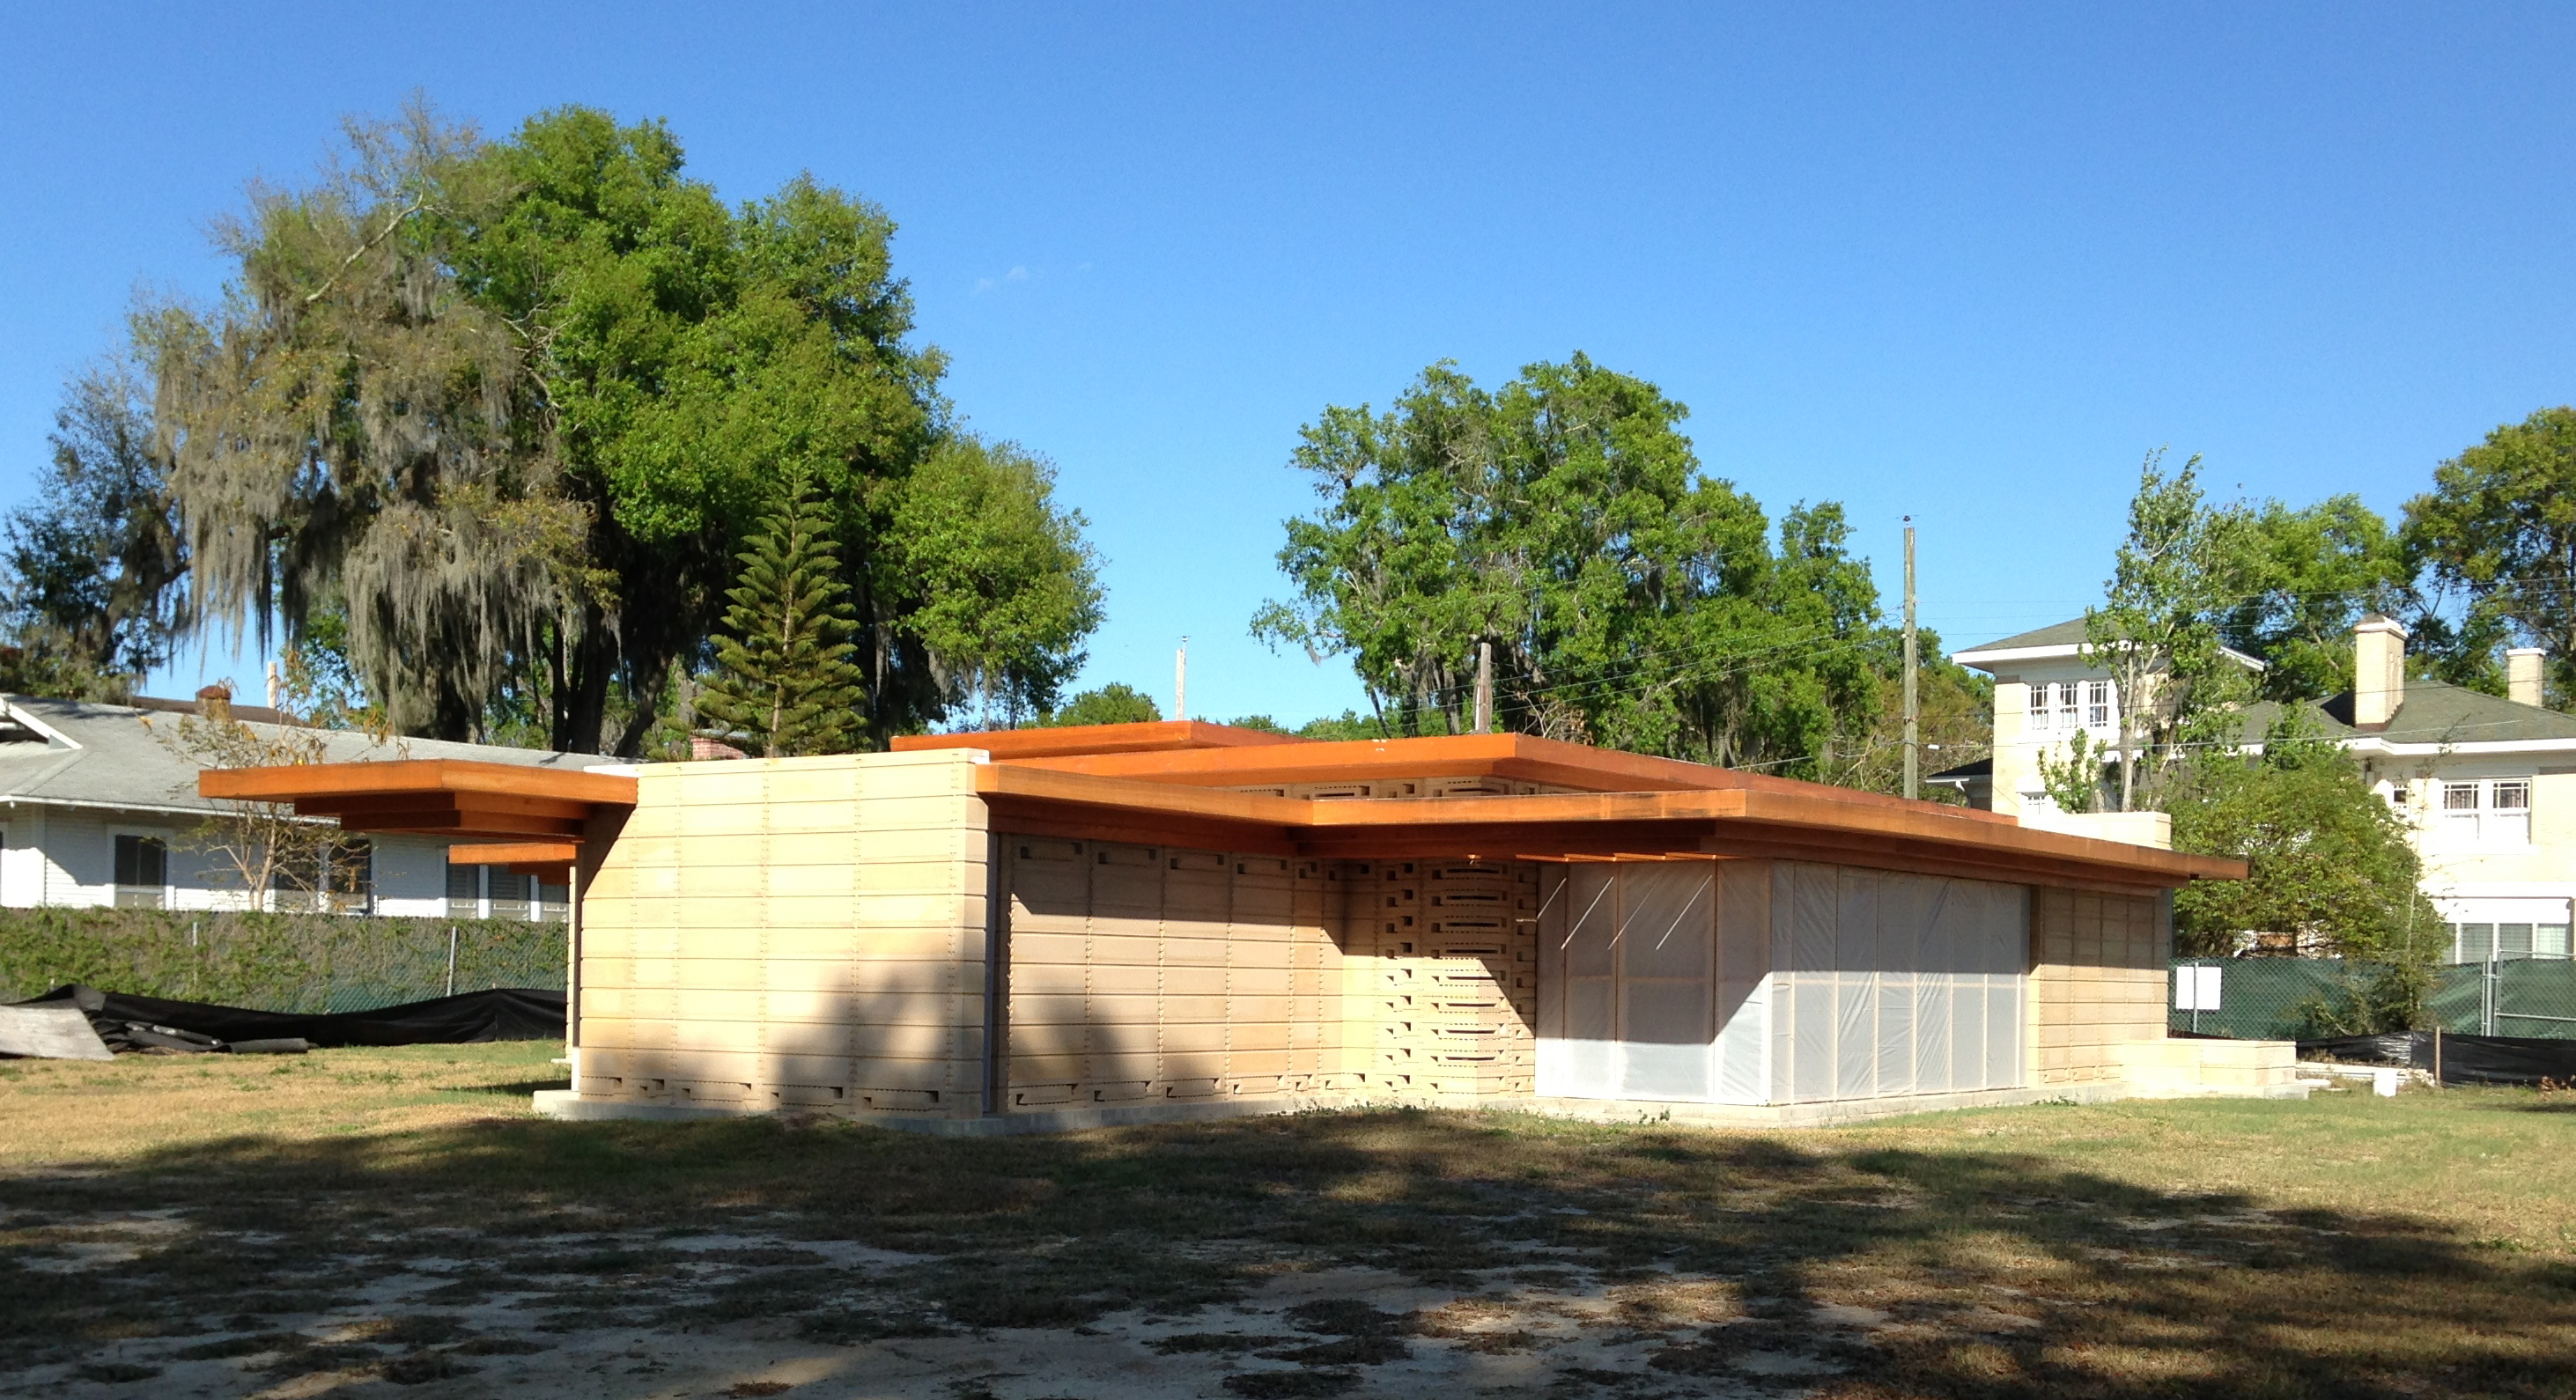 New frank lloyd wright house constructed at florida for Frank lloyd wright house piani gratuiti